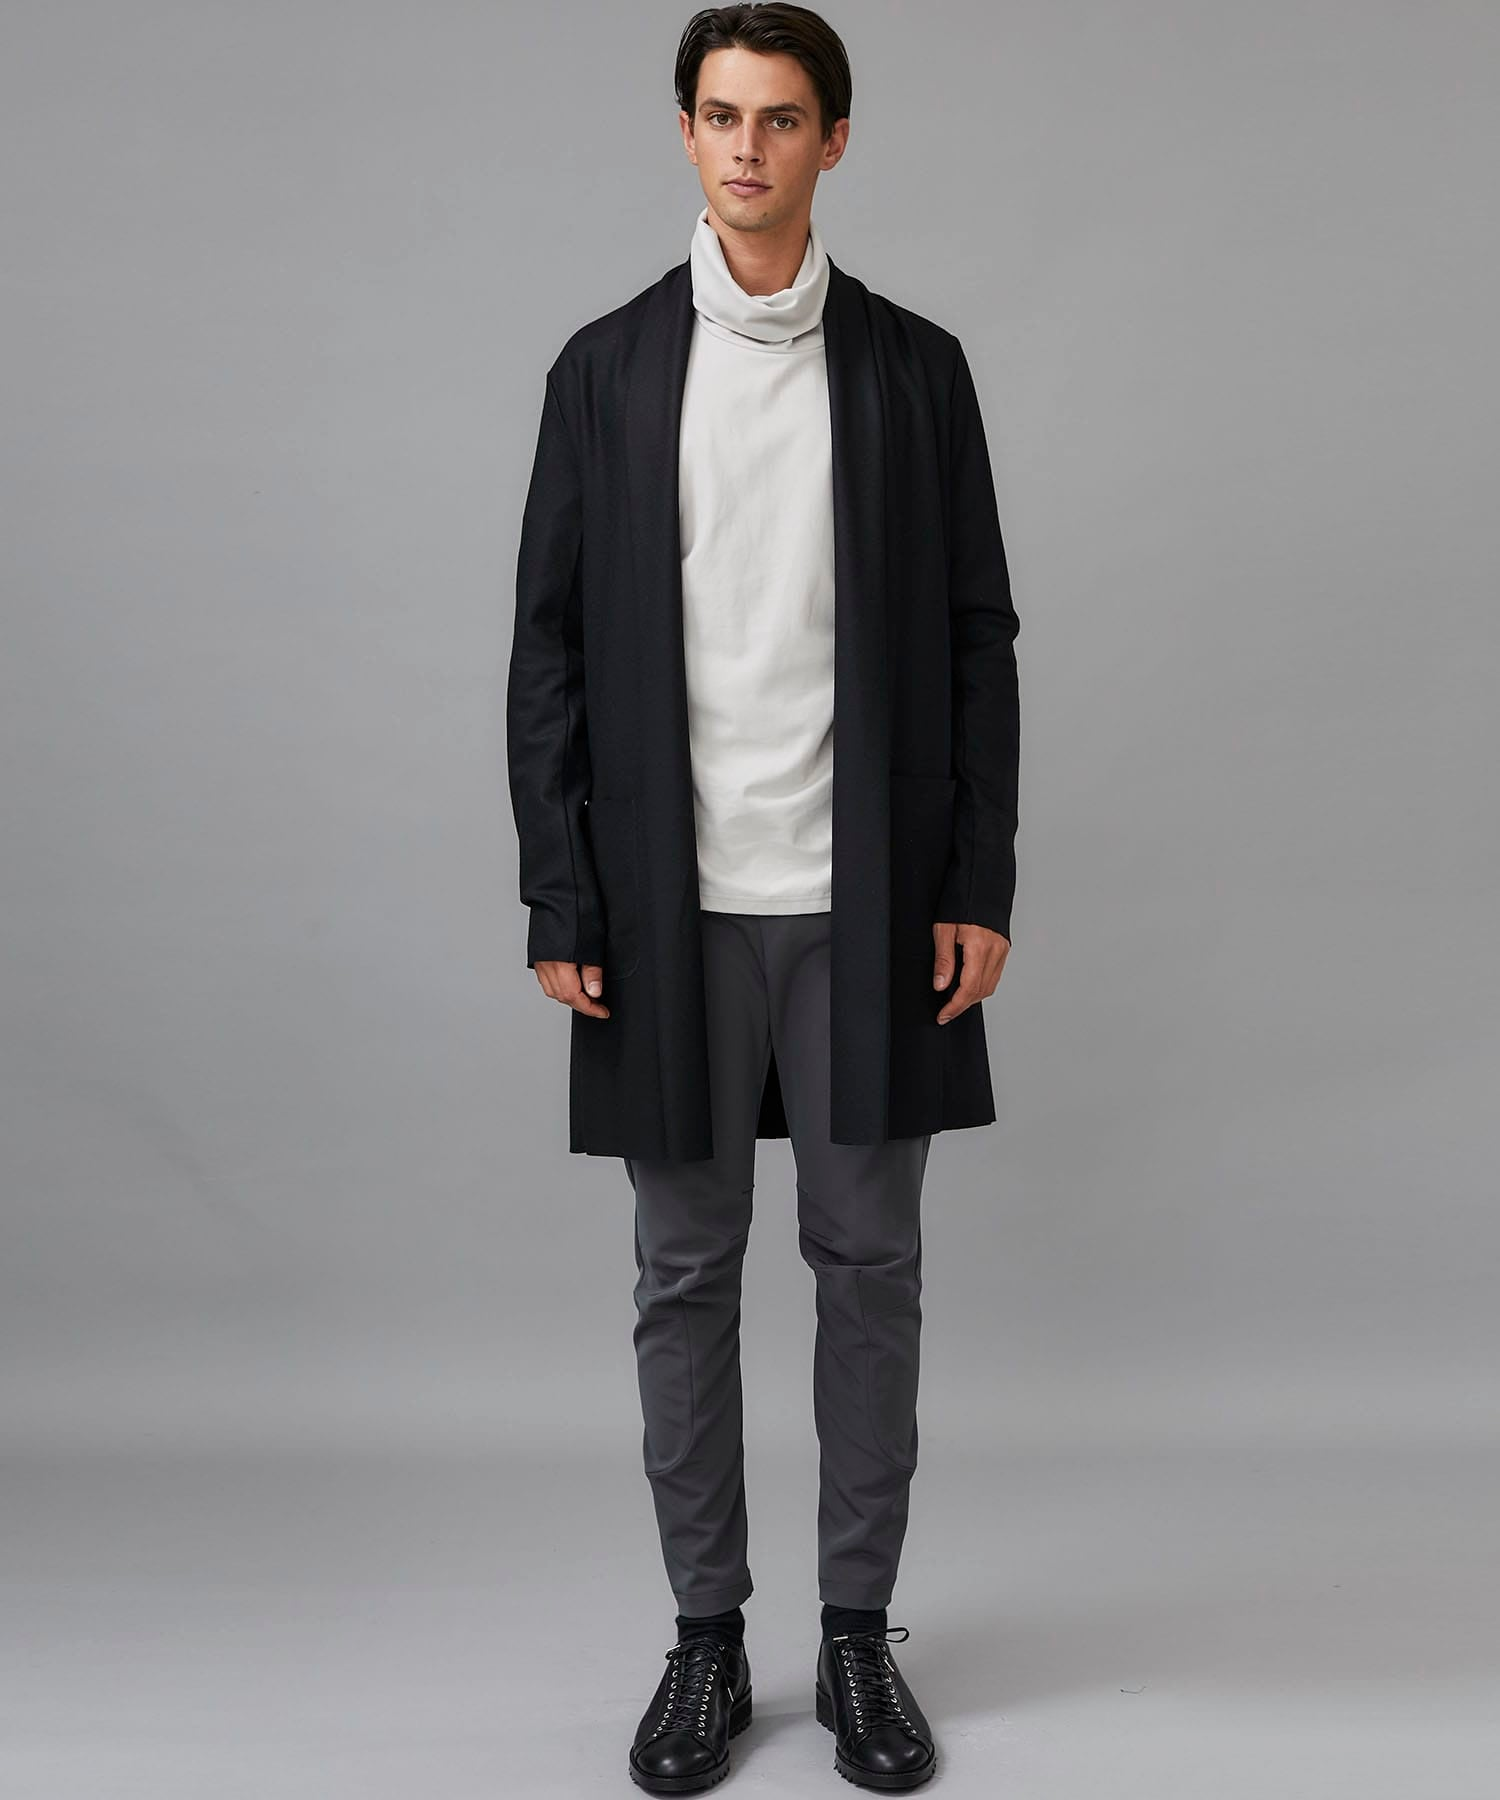 FLANNEL SMOOTH LONG STOLE CARDIGAN ATTACHMENT